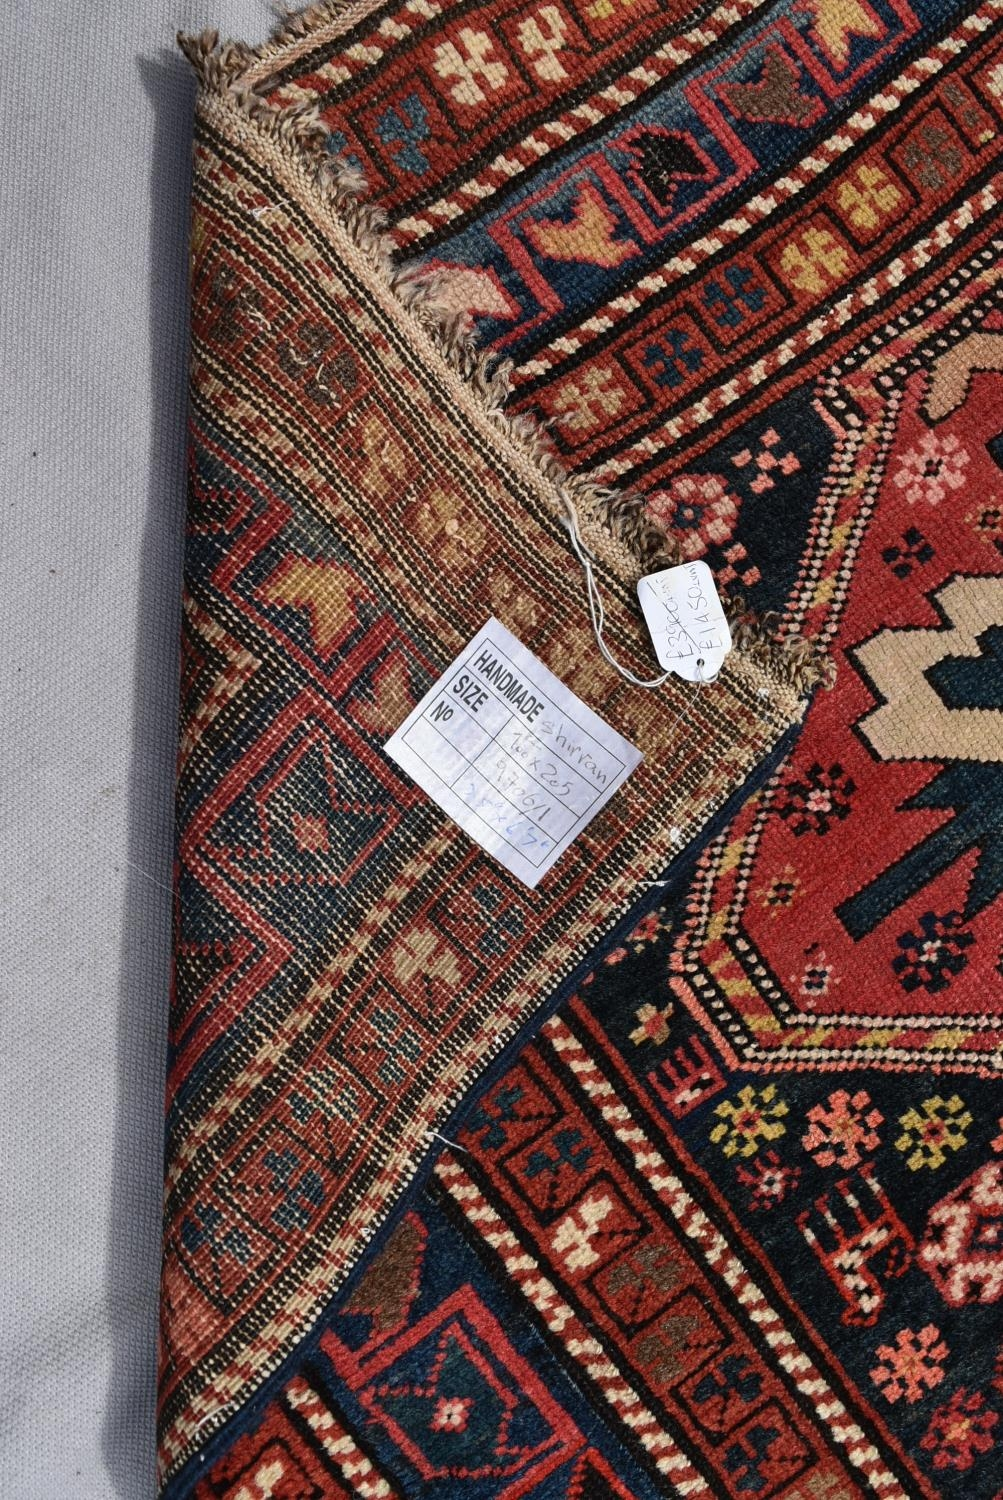 An antique Kazak rug with repeating central medallions and flowerhead and animal motifs contained - Image 4 of 5